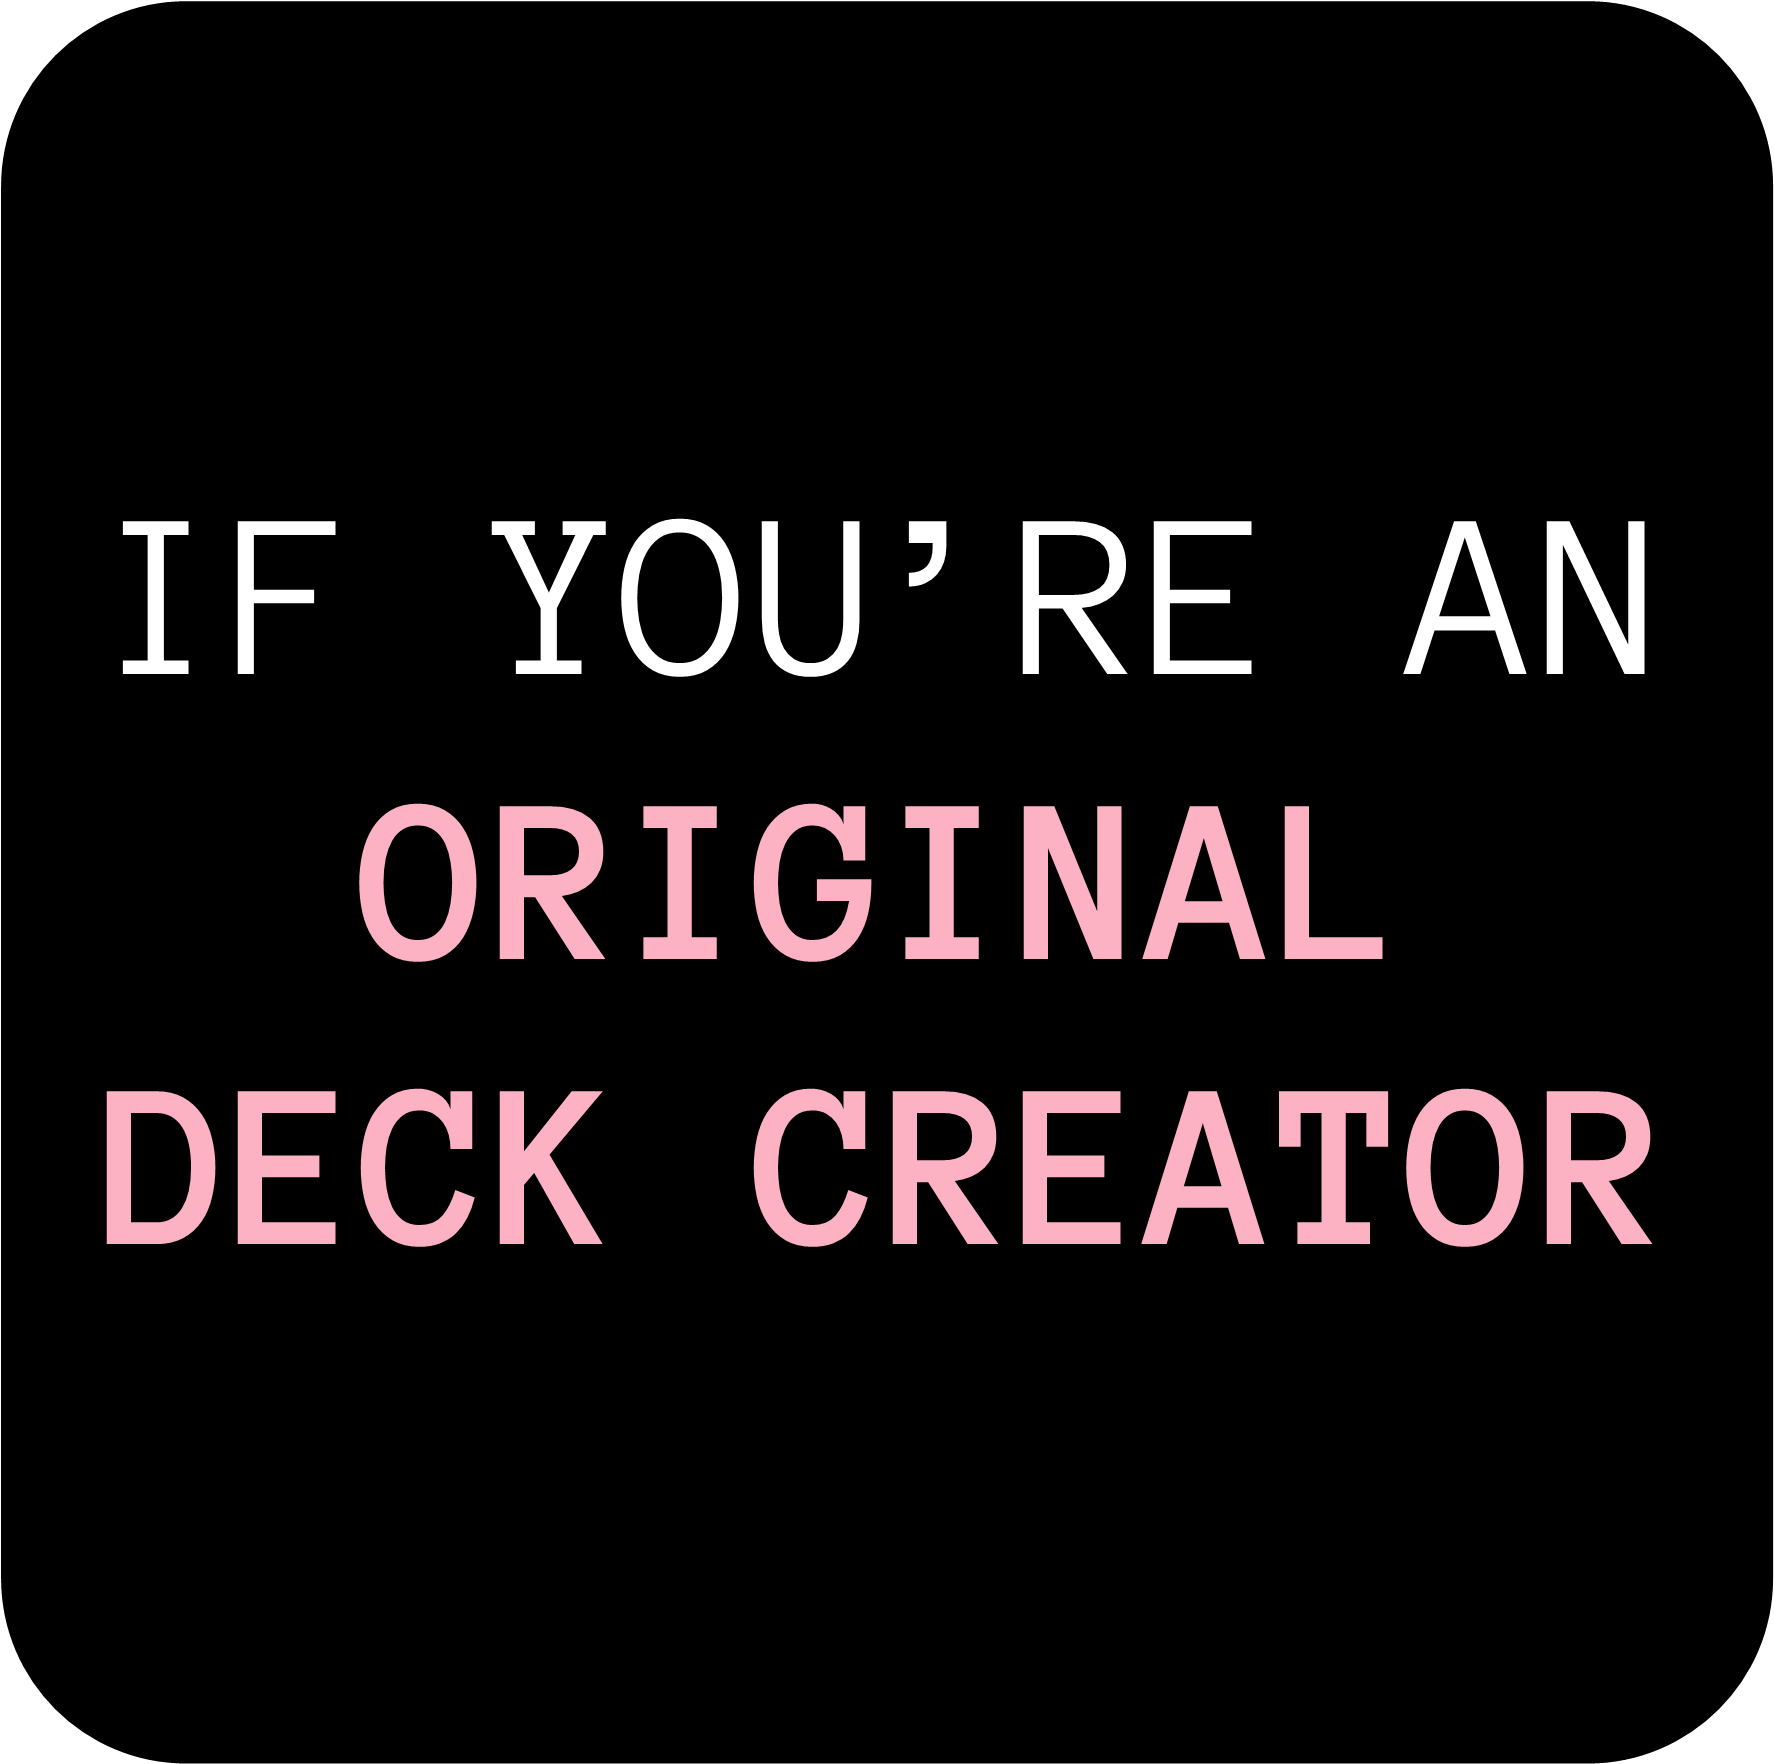 If you are a DECK CREATOR... - ⚙️...and you want to create original spreads to go with your original deck⚙️...spreads that help your deck users explore the unique story world of your deck more deeply ⚙️...spreads that guide + teach your deck users how they can best utilize your deck⚙️...spreads that inspire + communicate your creative intention and your message⚙️...spreads that all-in-all make your deck more worthwhile and attractive Then this add-on is for you! Embark on THE DECK CREATOR'S QUEST to unlock this add-on. 🗝️